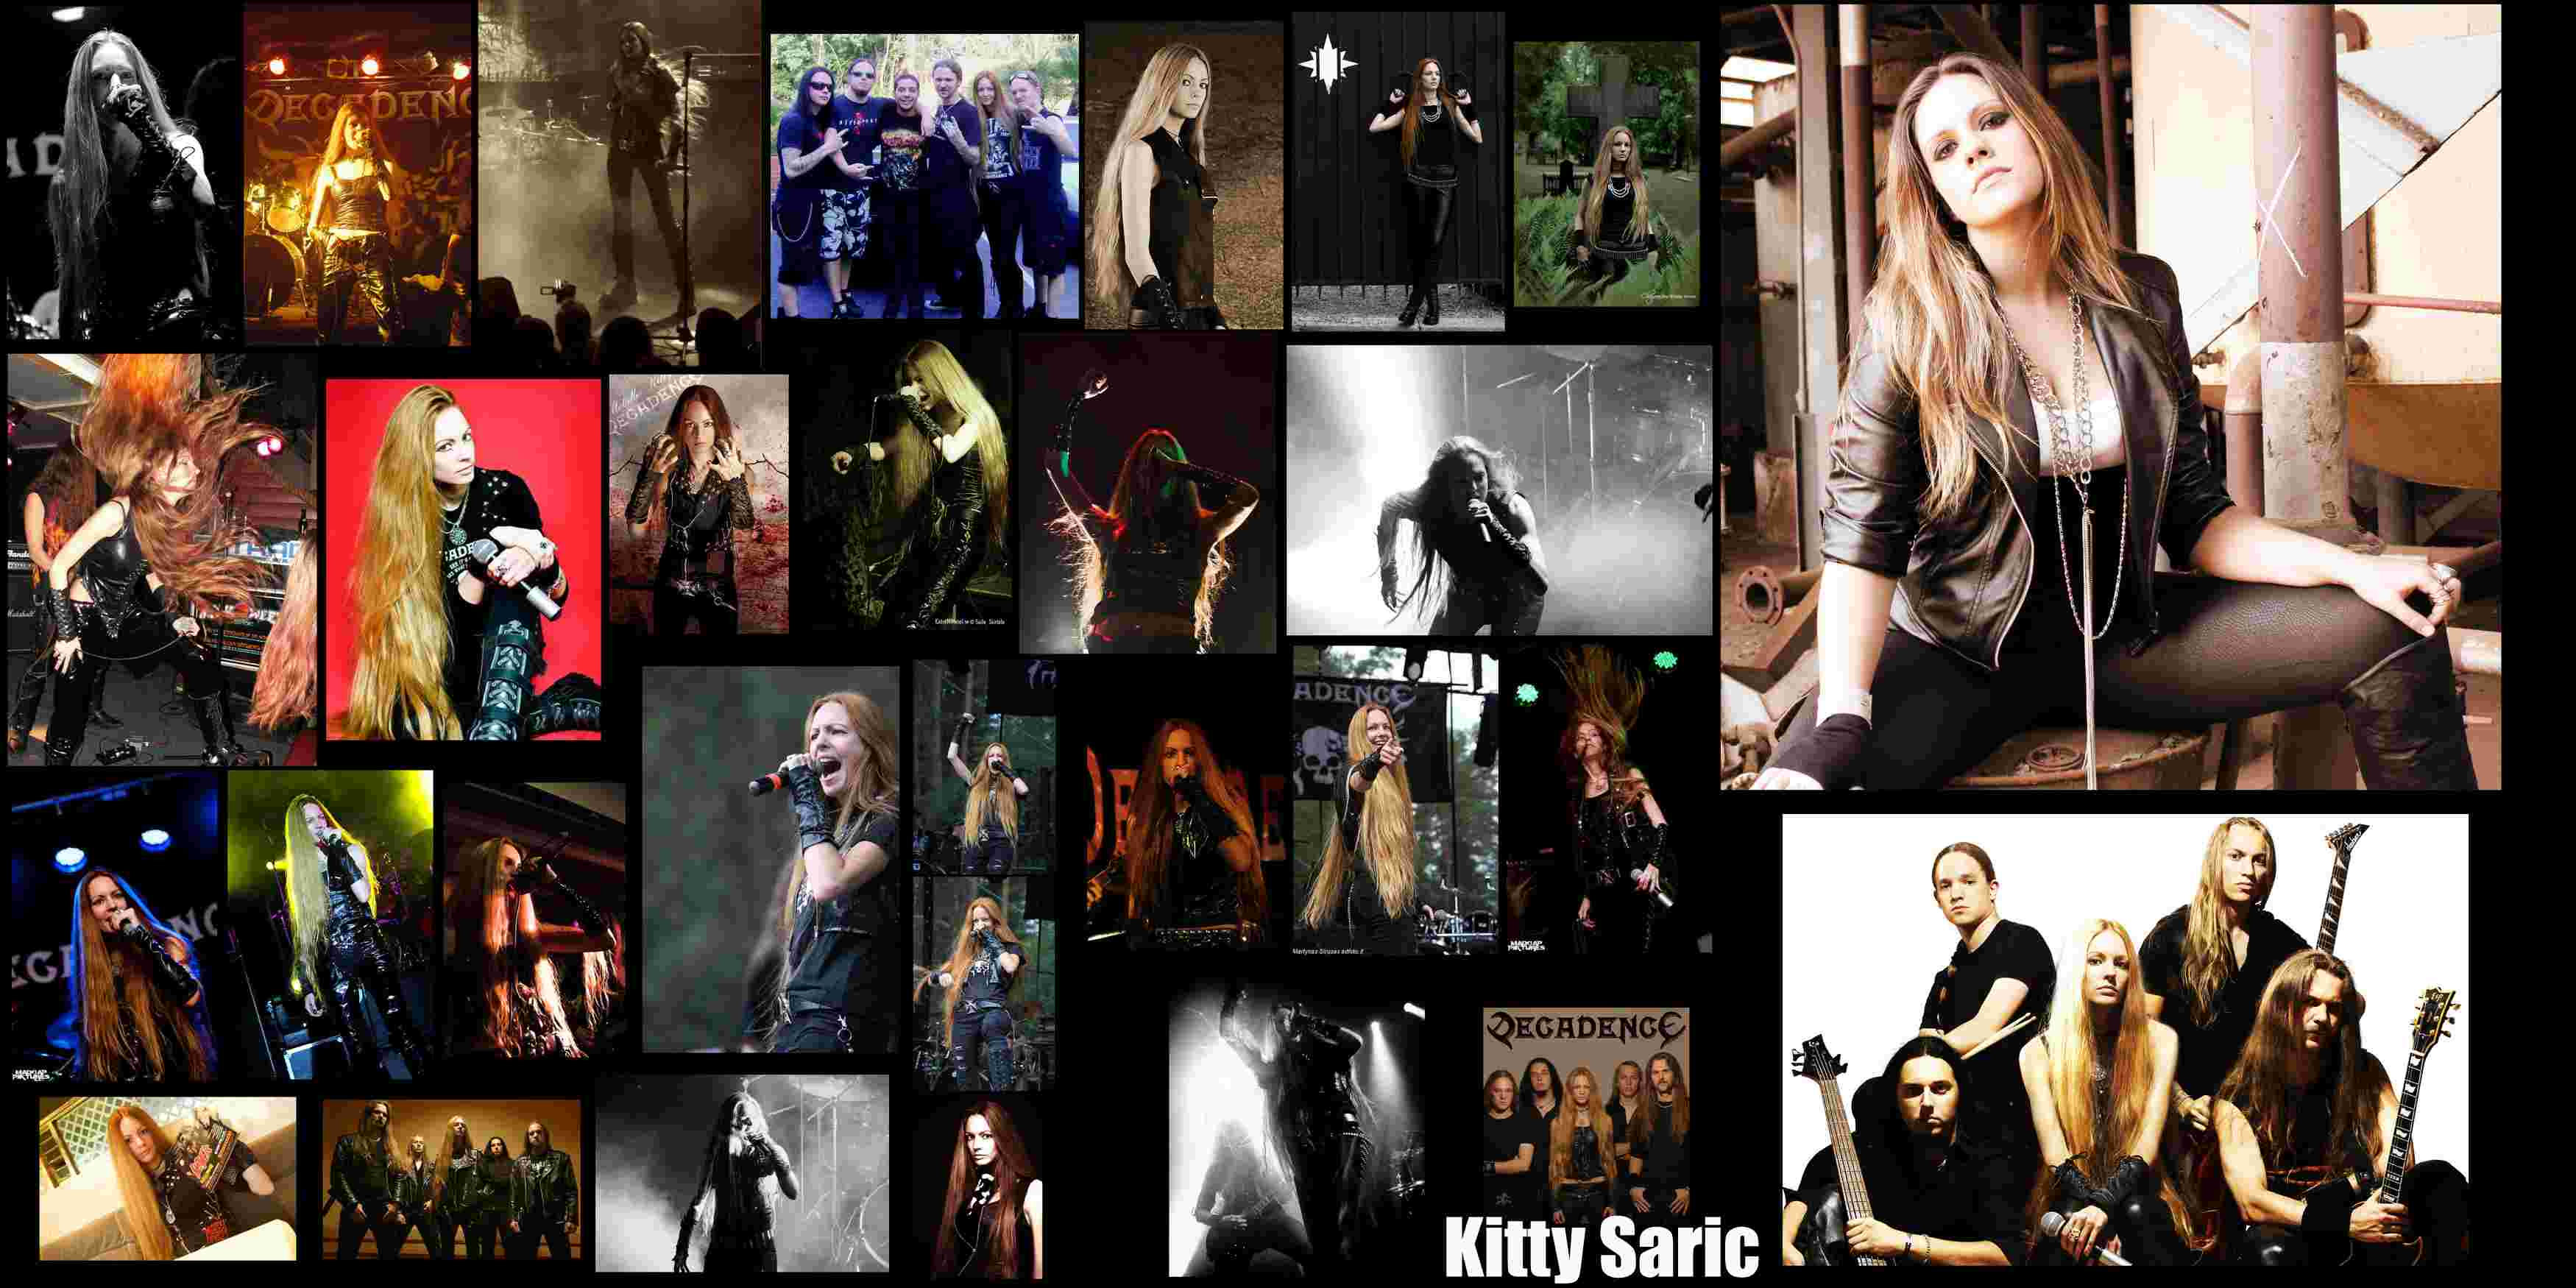 Mes petits montages photos ... - Page 9 Kitty_10